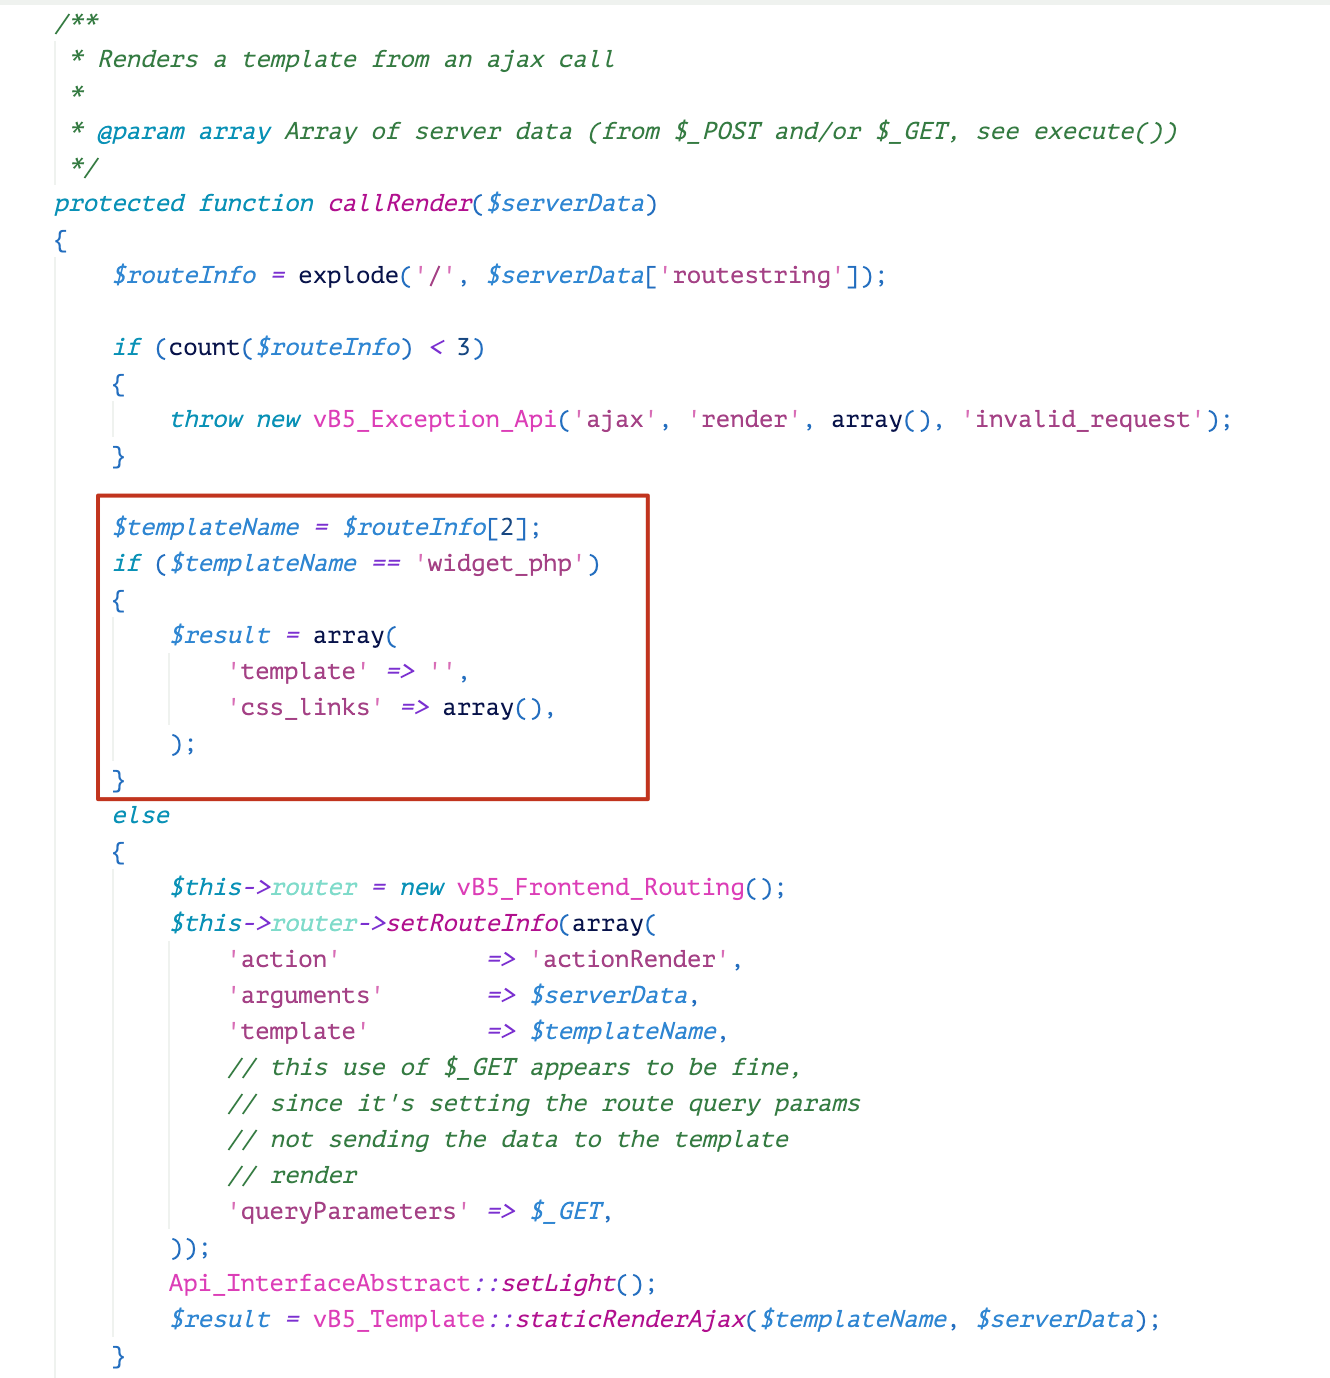 Beginning from version 5.5.5, a fix for CVE-2019-16759 was introduced into the function callRender() It uses a disallow-list mechanism to check the template name.